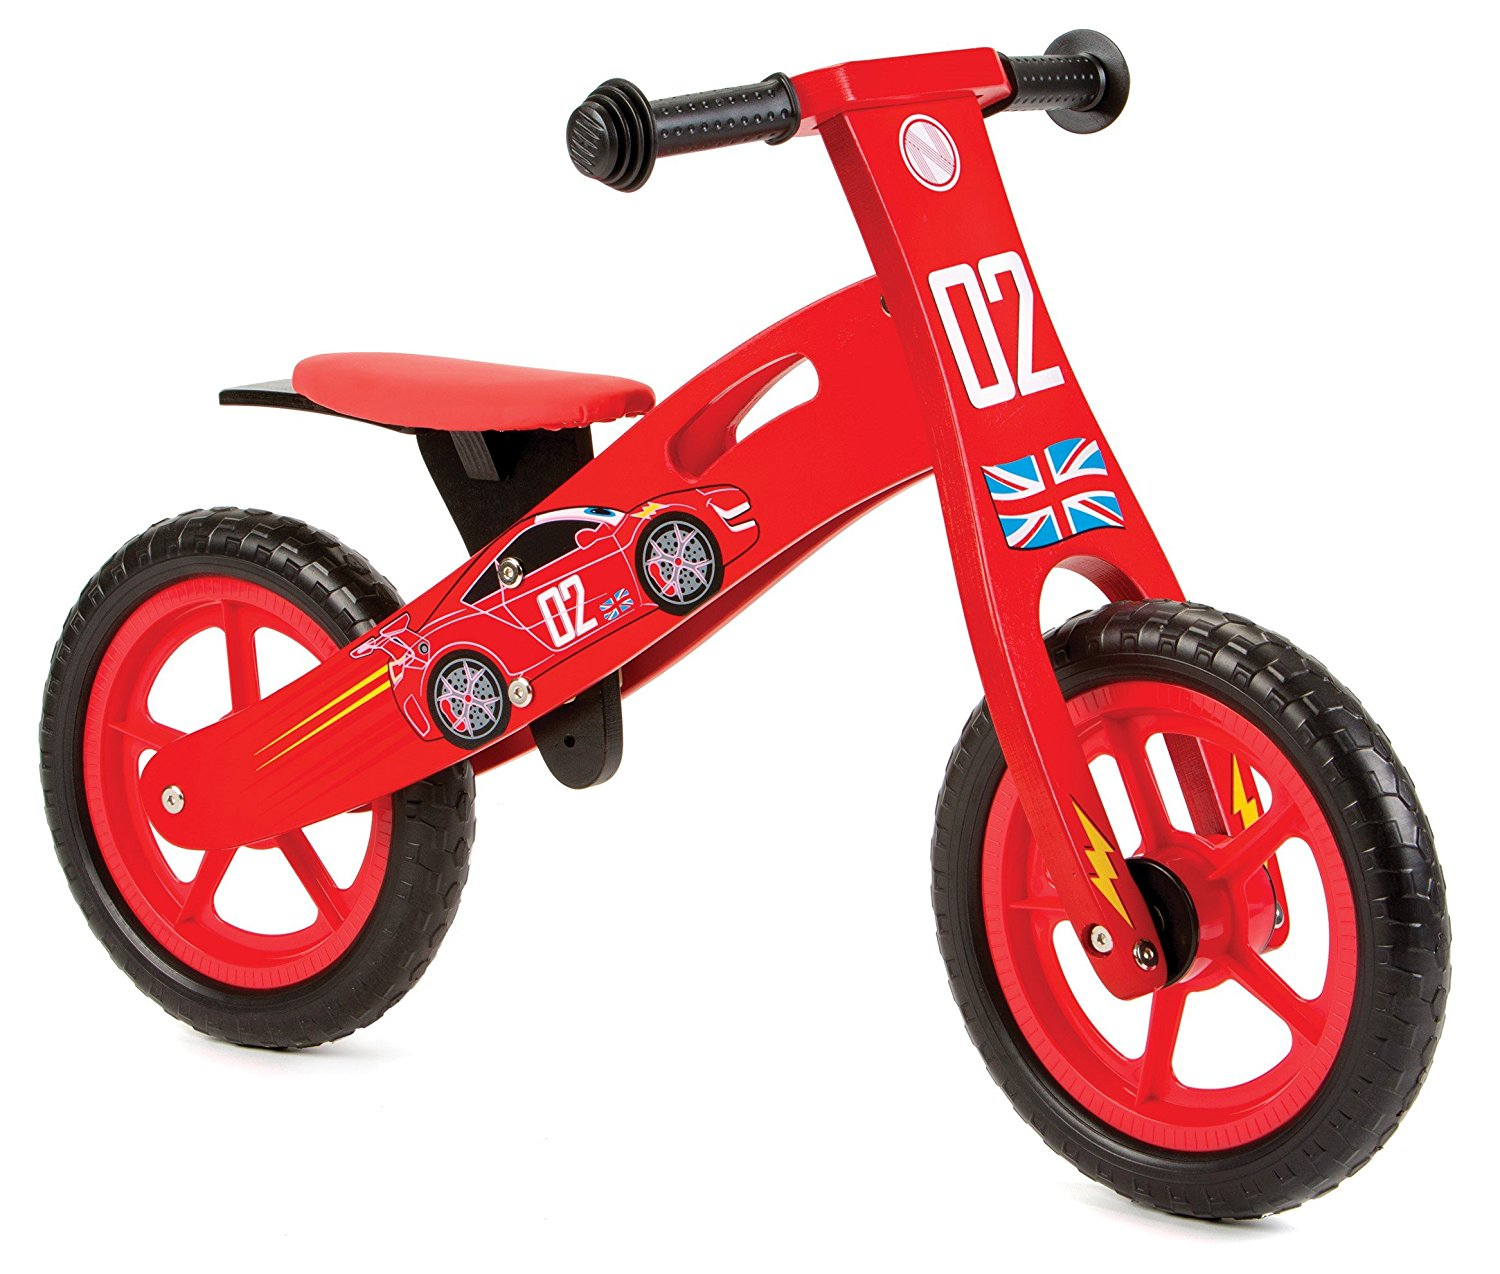 Nicko Racing Cars Kids Children's Wooden Balance Bike